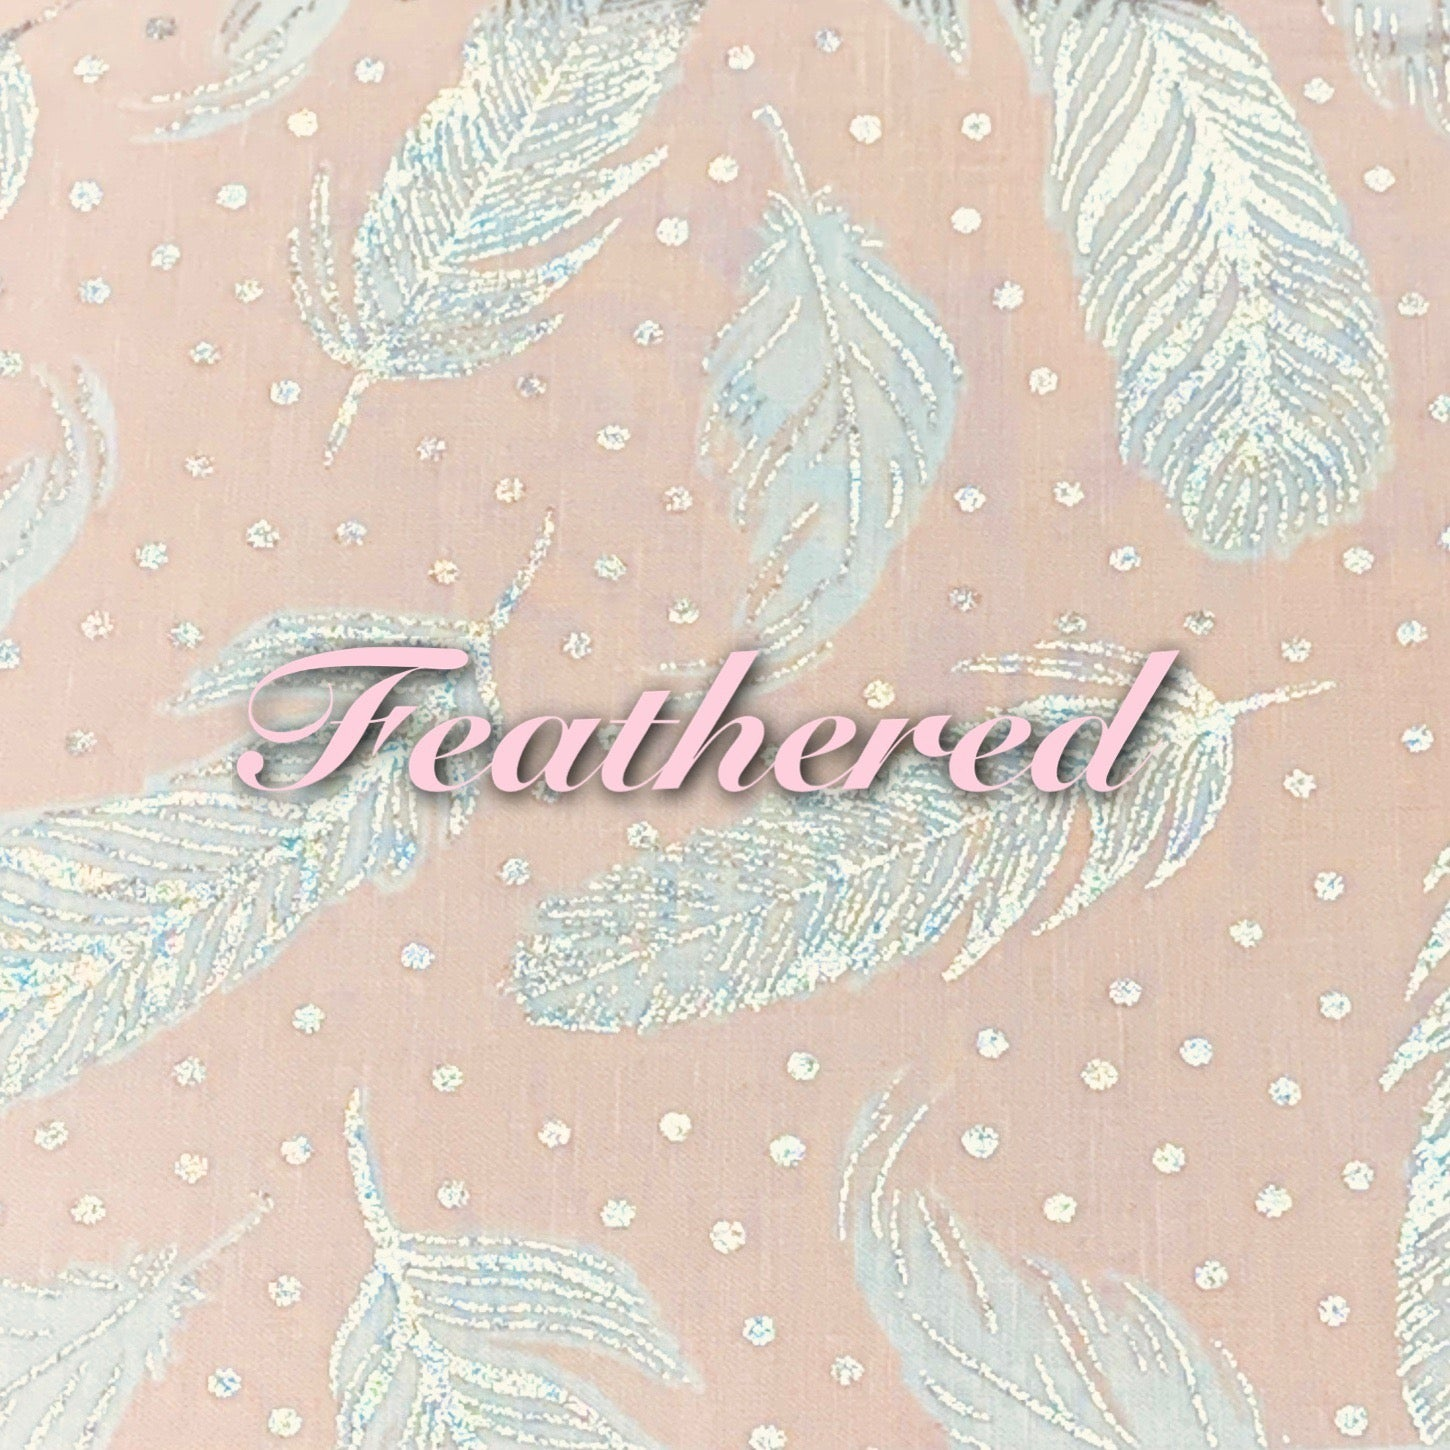 Limited Edition! Feathered - Quilter's Cotton - Featuring Ivory Back,  Metallic Silver Accents & Snaps!